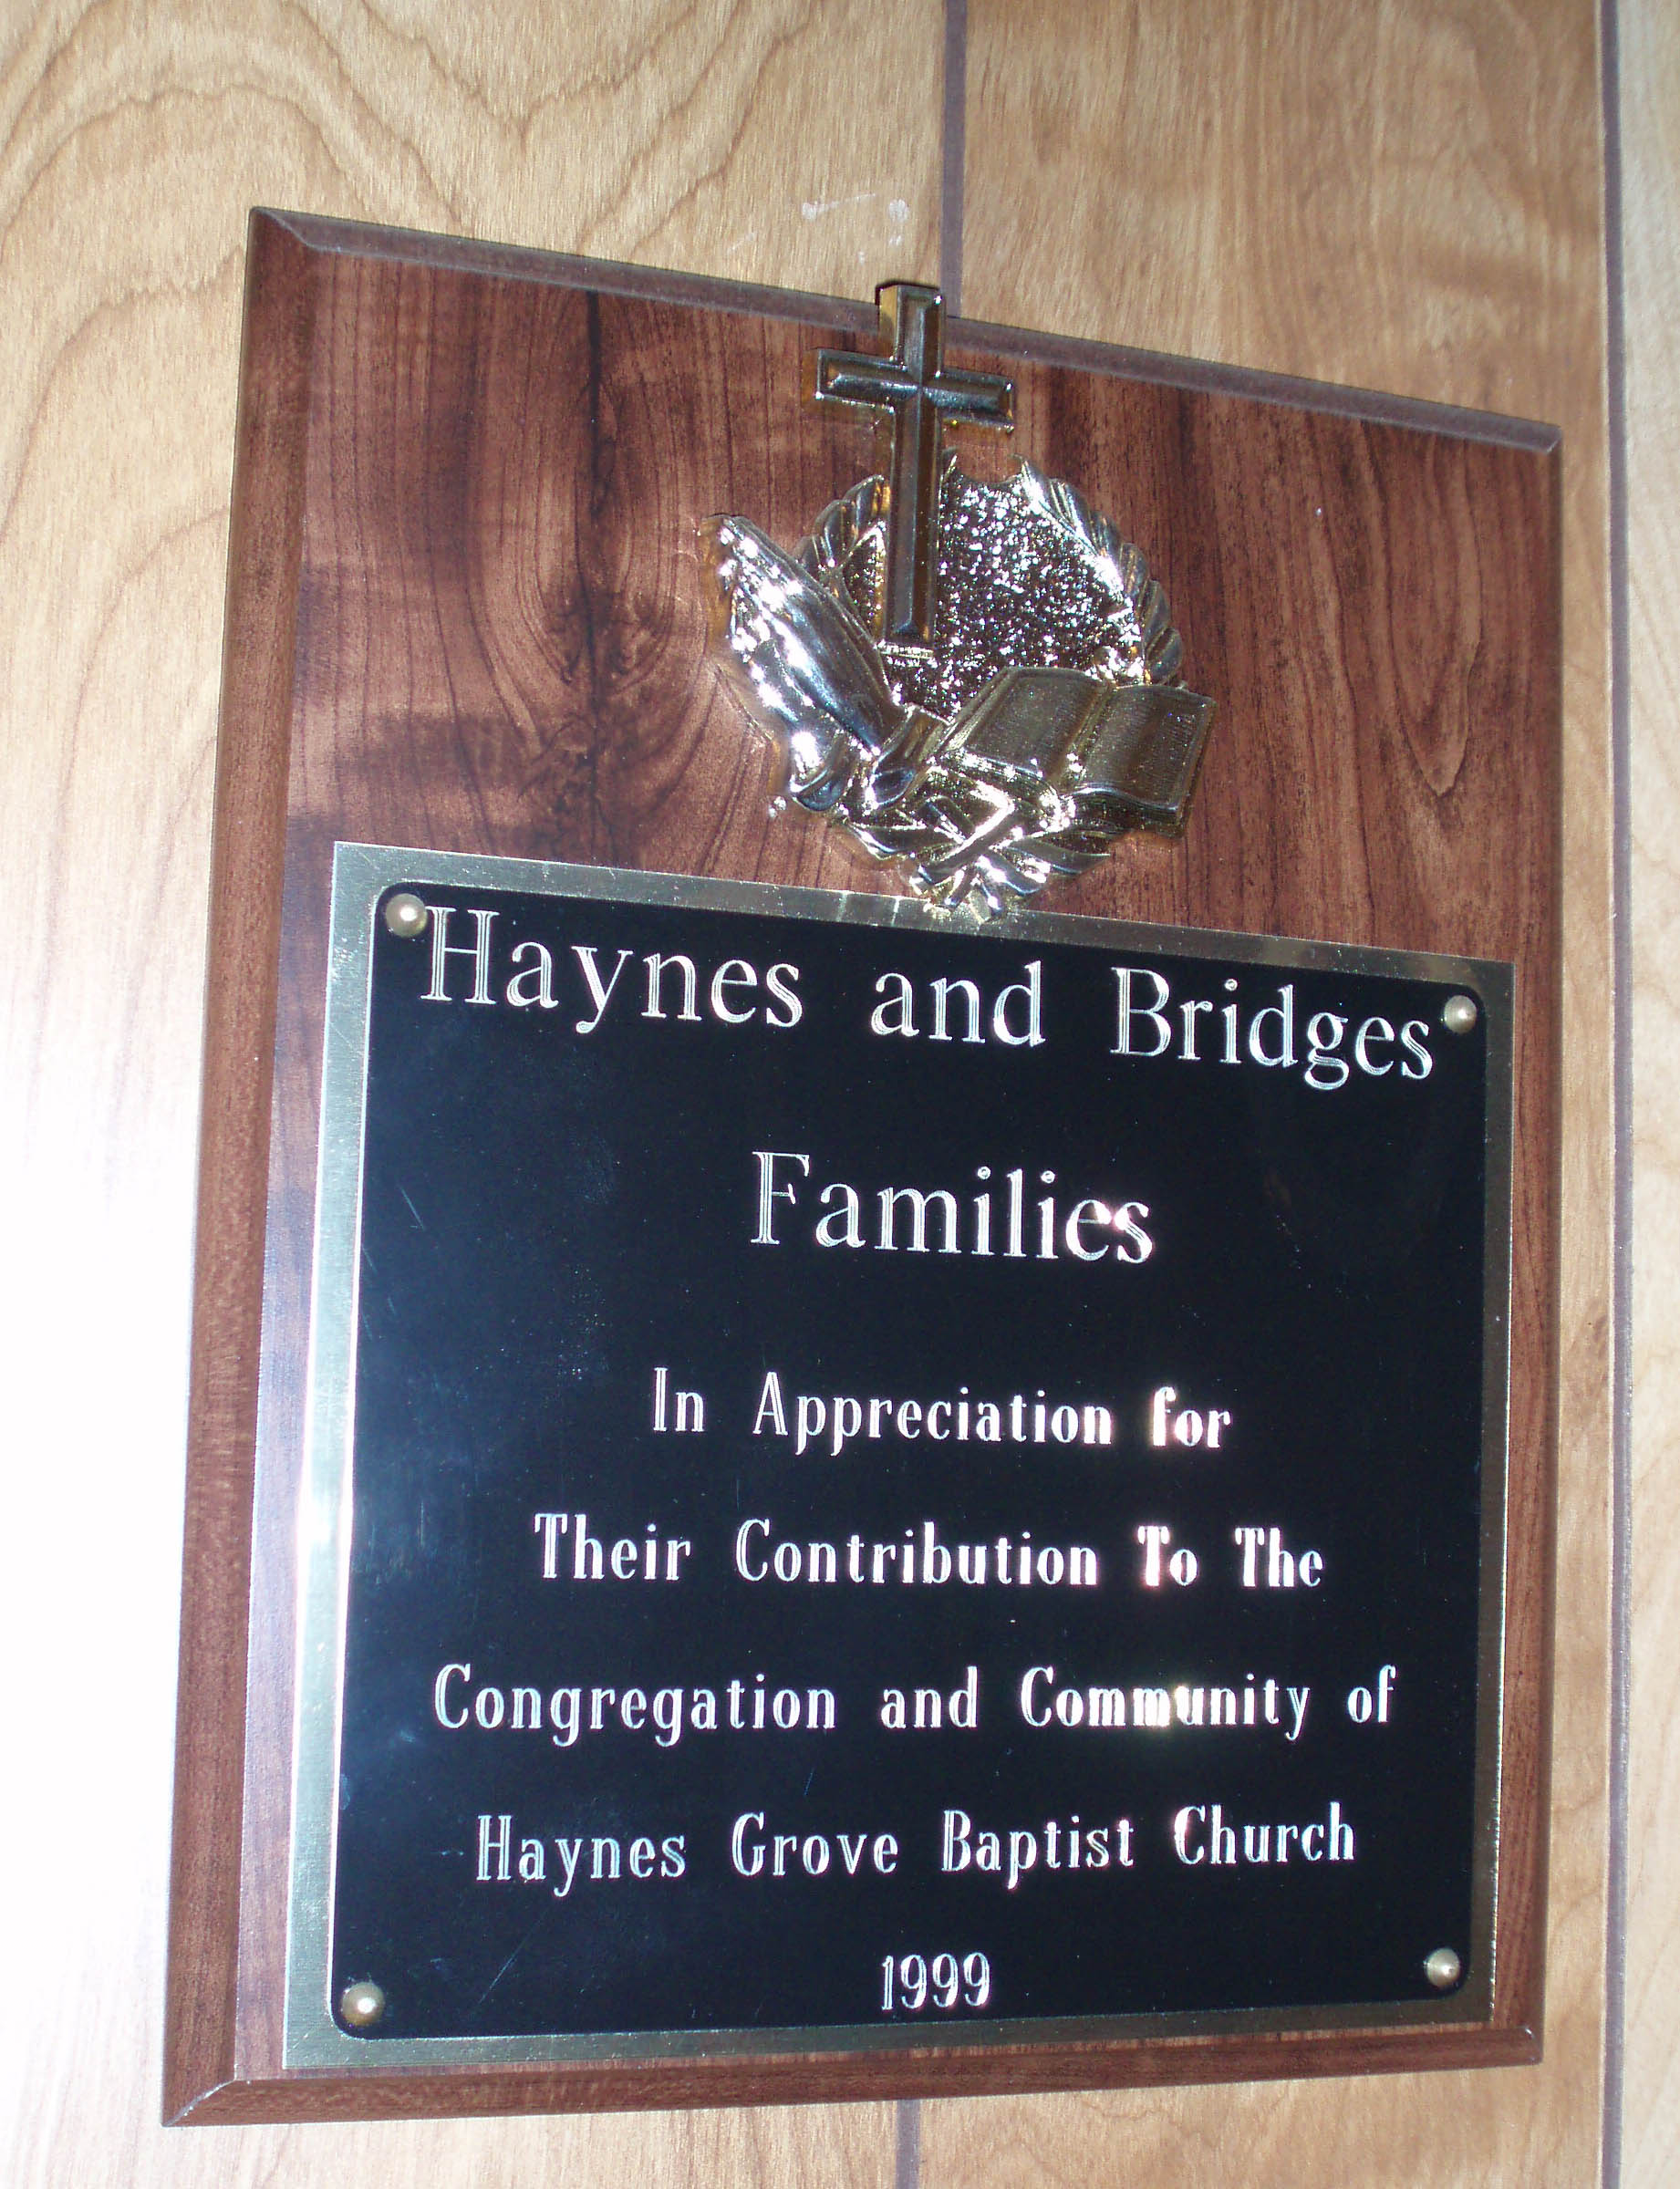 To the Haynes and Bridges families, who have contributed much to the church. Dated 1999.